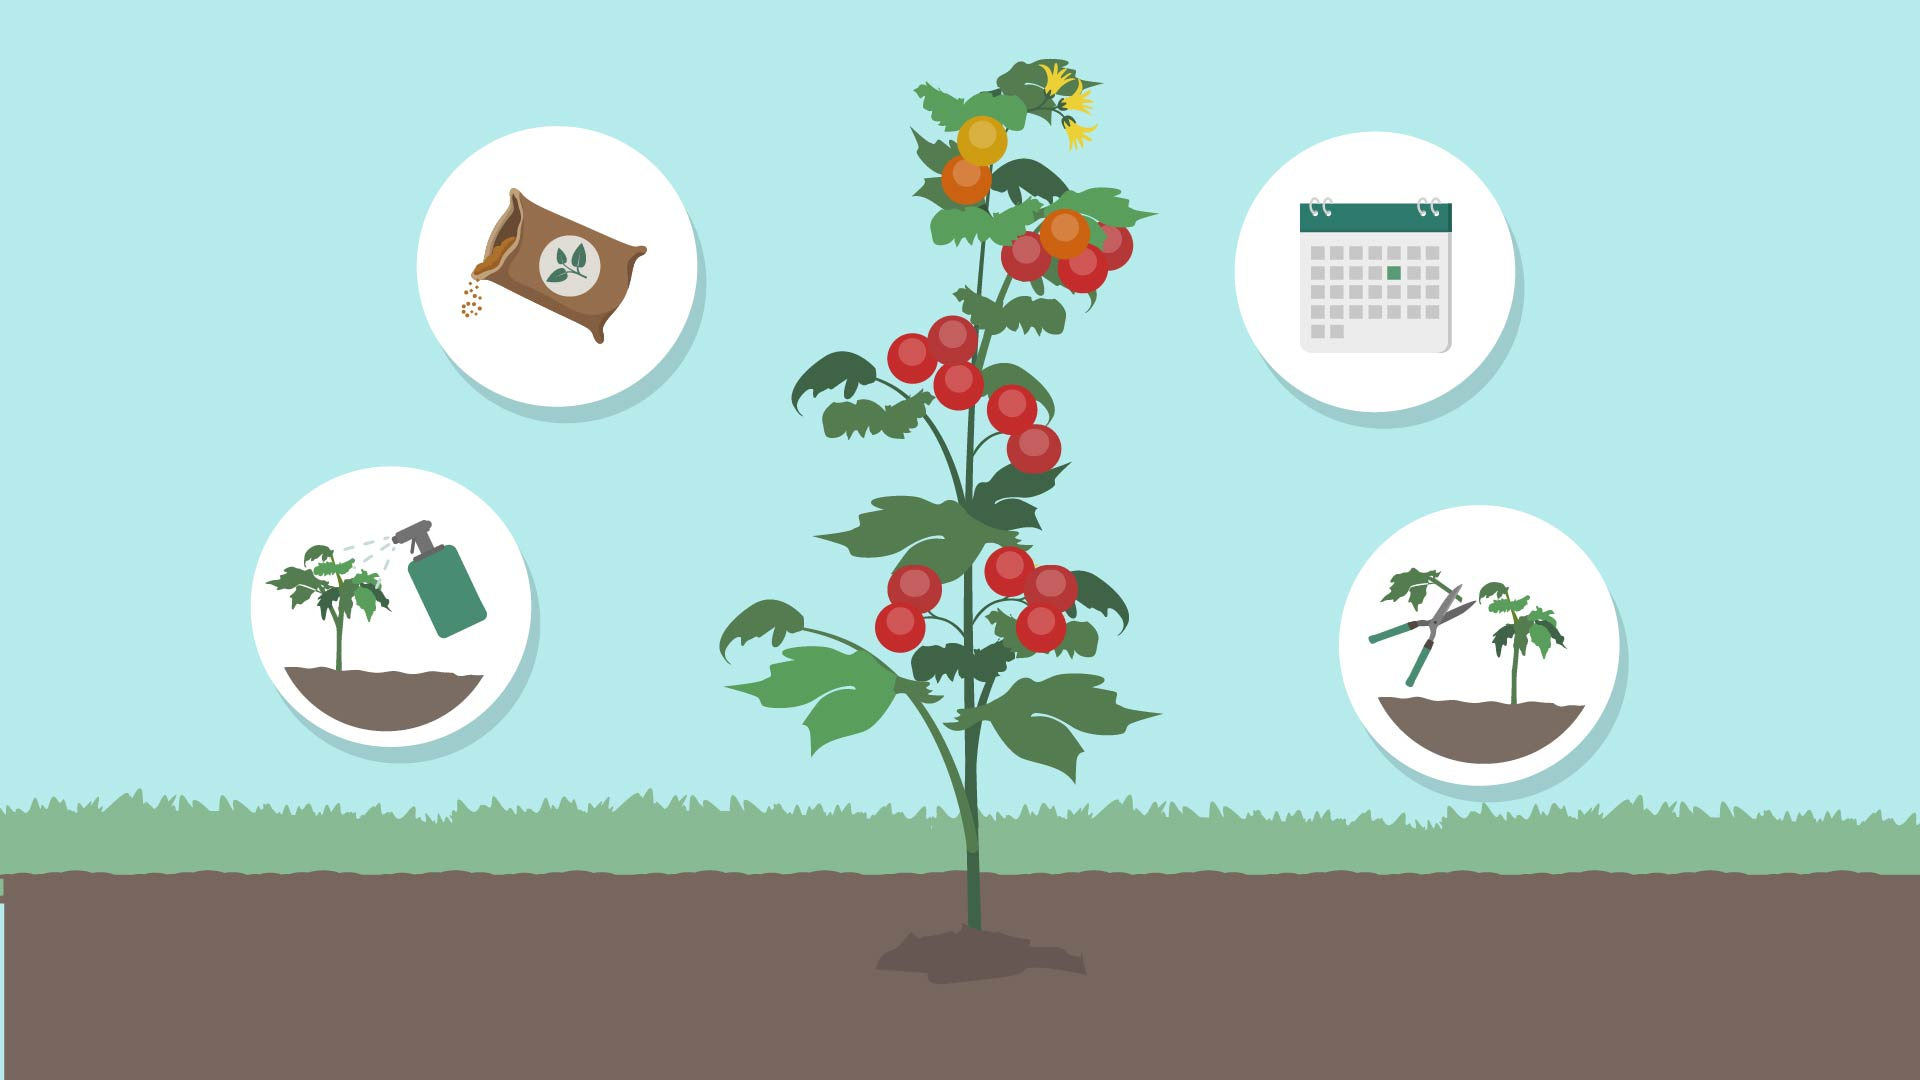 Especially for tomatoes, vegetable farming in India is viable all year round.